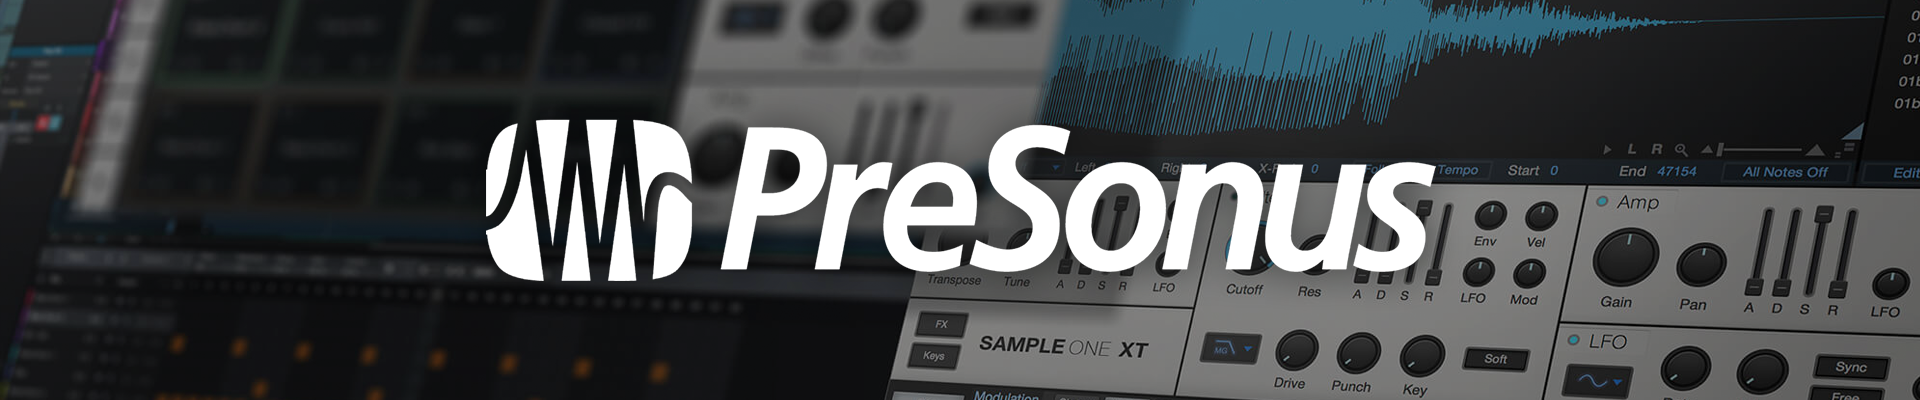 It's All About PreSonus - High-Performance + Affordability - GAK BLOG